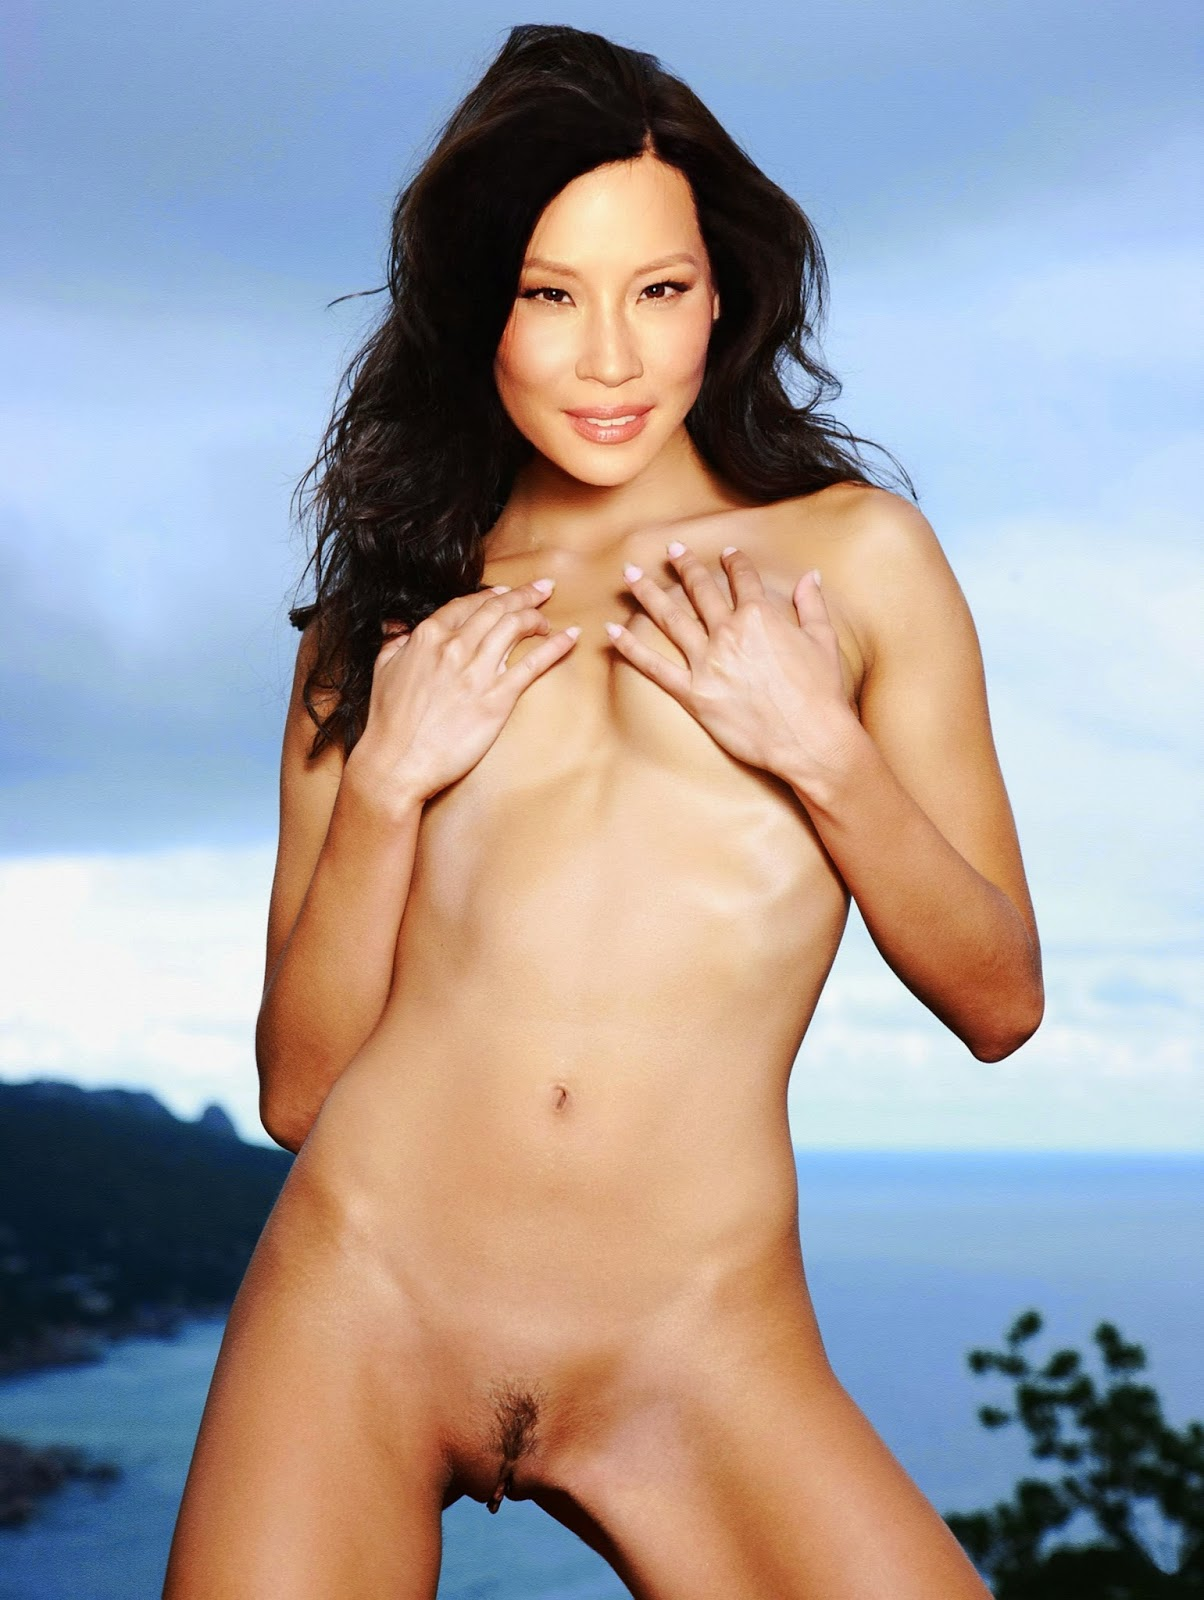 Lucy Liu Fakes Hot Asian Actress Naked Gallery